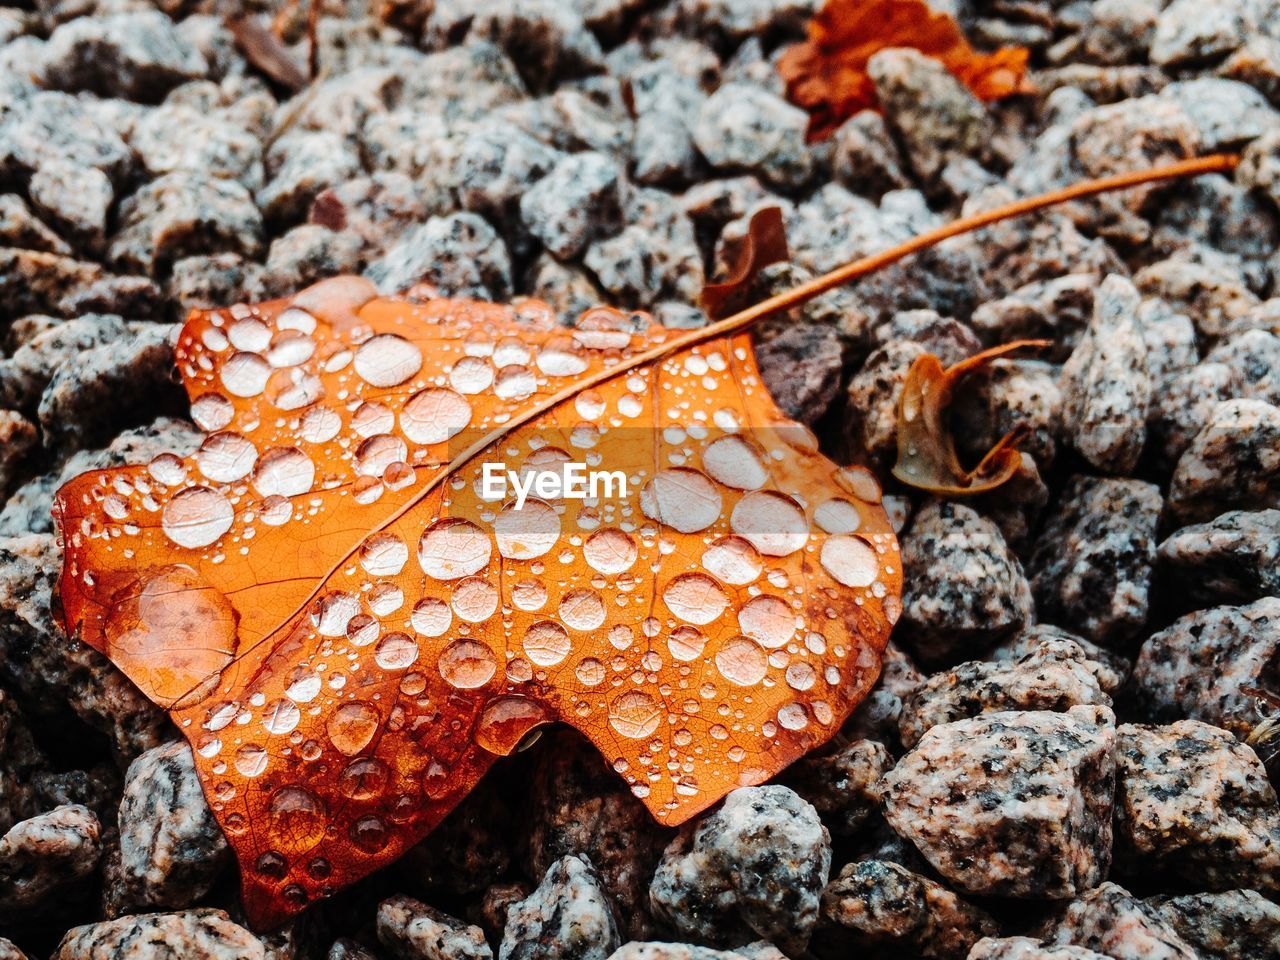 close-up, orange color, nature, no people, growth, day, beauty in nature, leaf, plant part, land, plant, water, focus on foreground, high angle view, outdoors, food, wet, red, mushroom, leaves